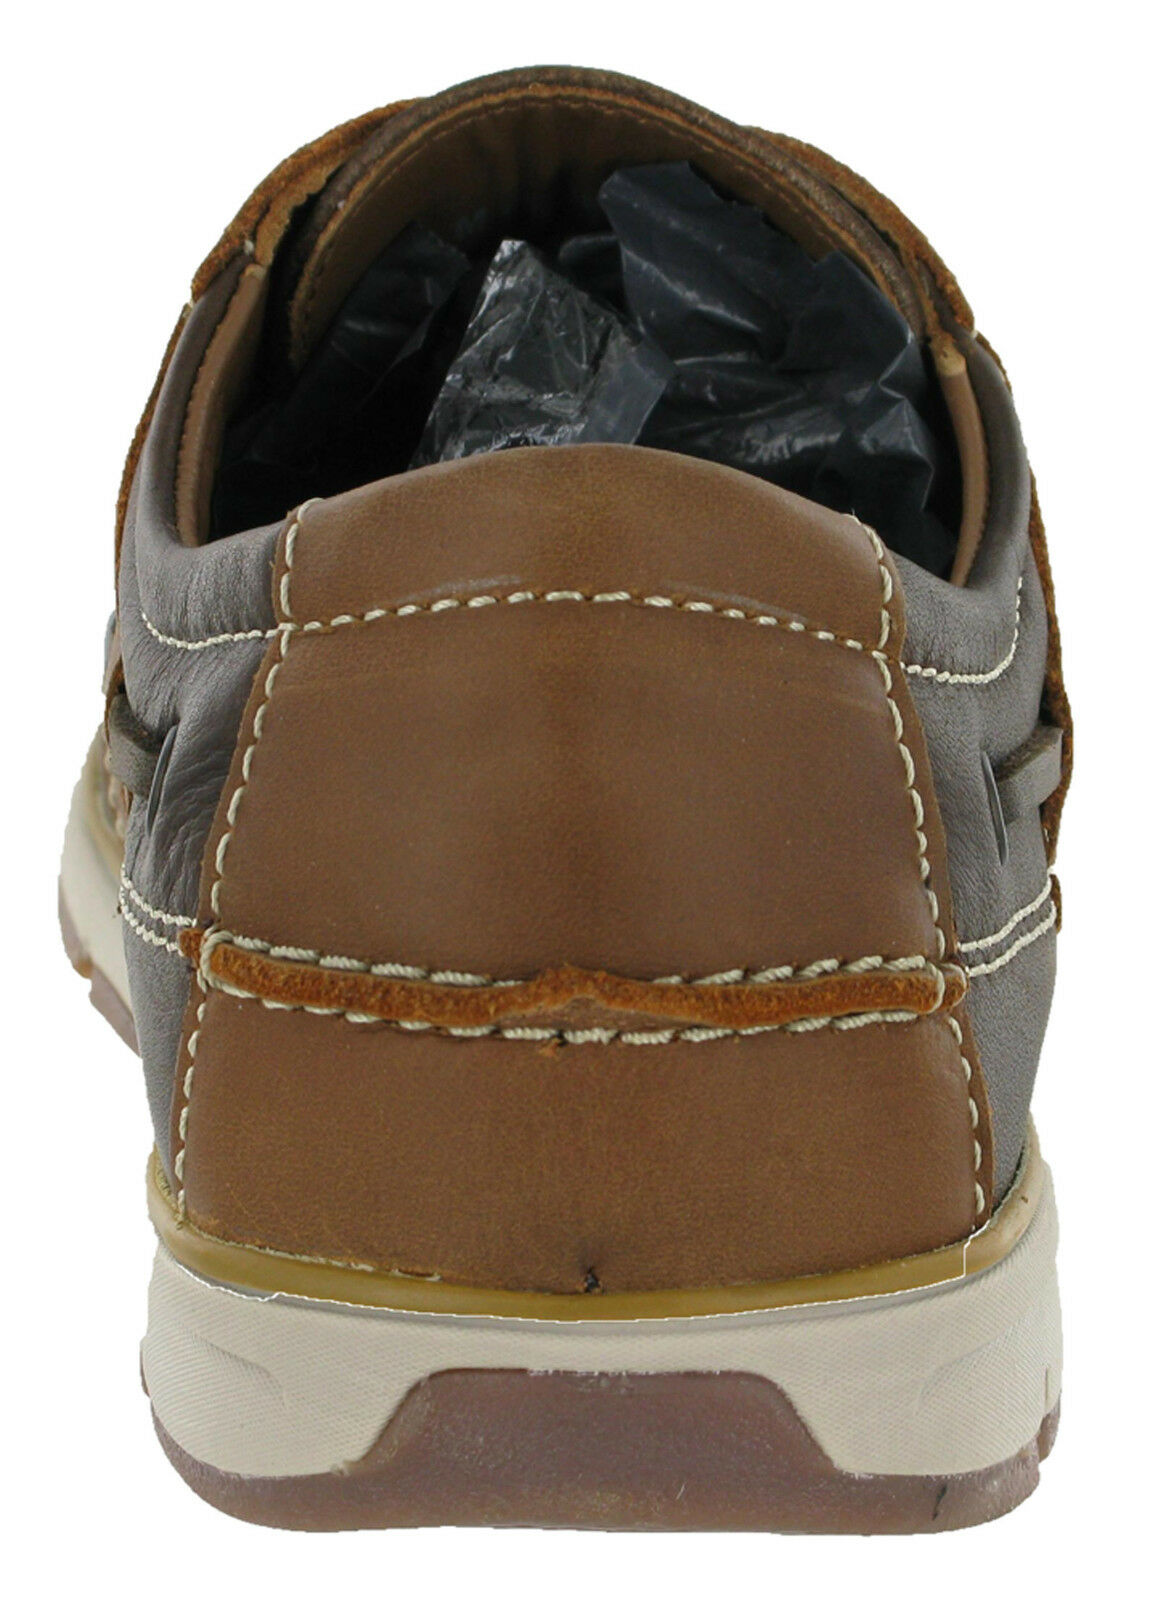 Roamers Moccasin Boat Lace Shoes Leather Lined Lightweight Lace Boat Mens Leisure Trainers 4e1932